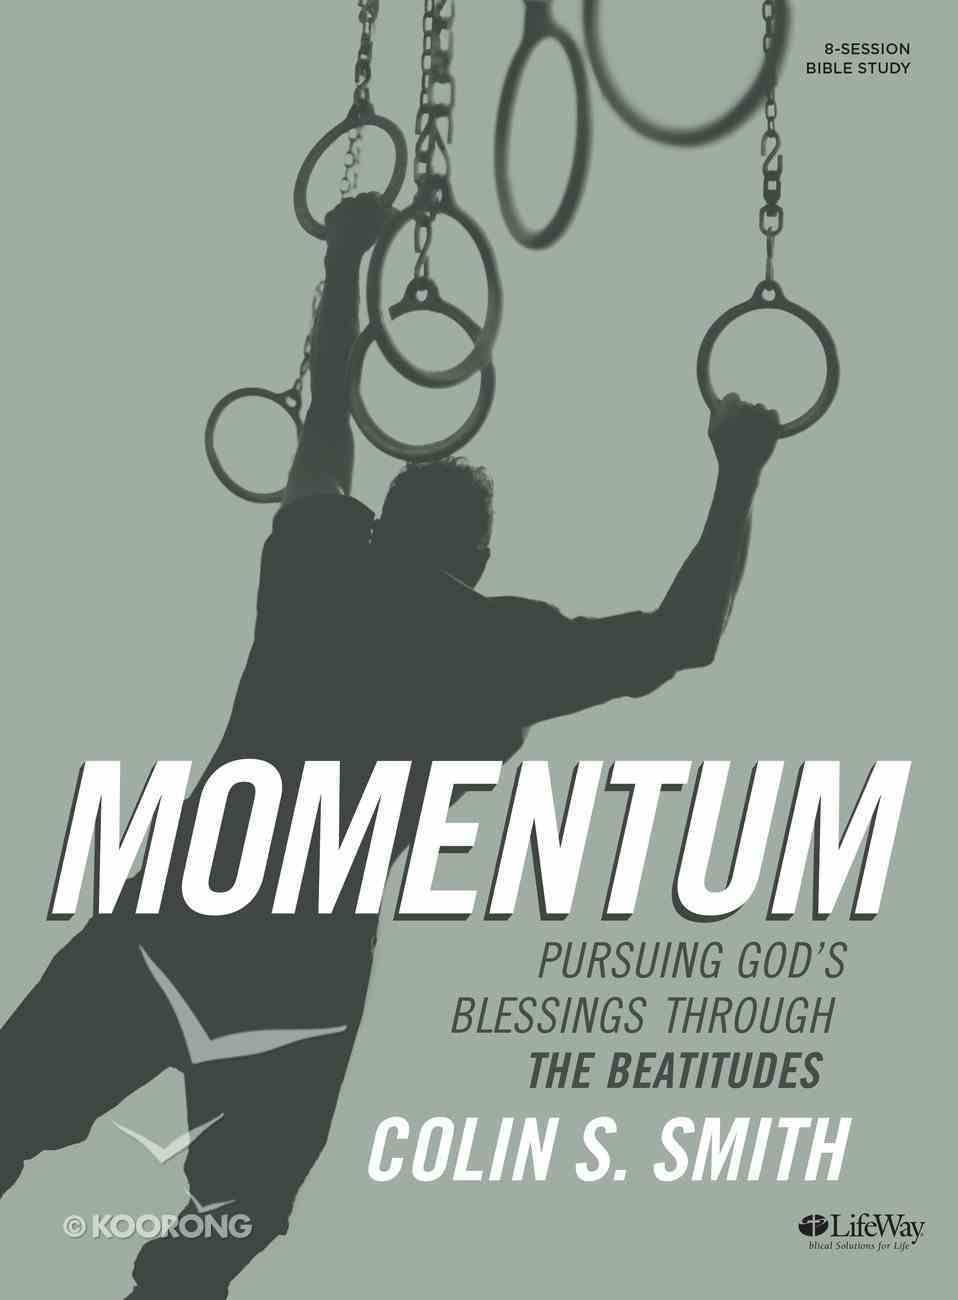 Momentum: Pursuing God's Blessings Through the Beatitudes (Bible Study Book) Paperback